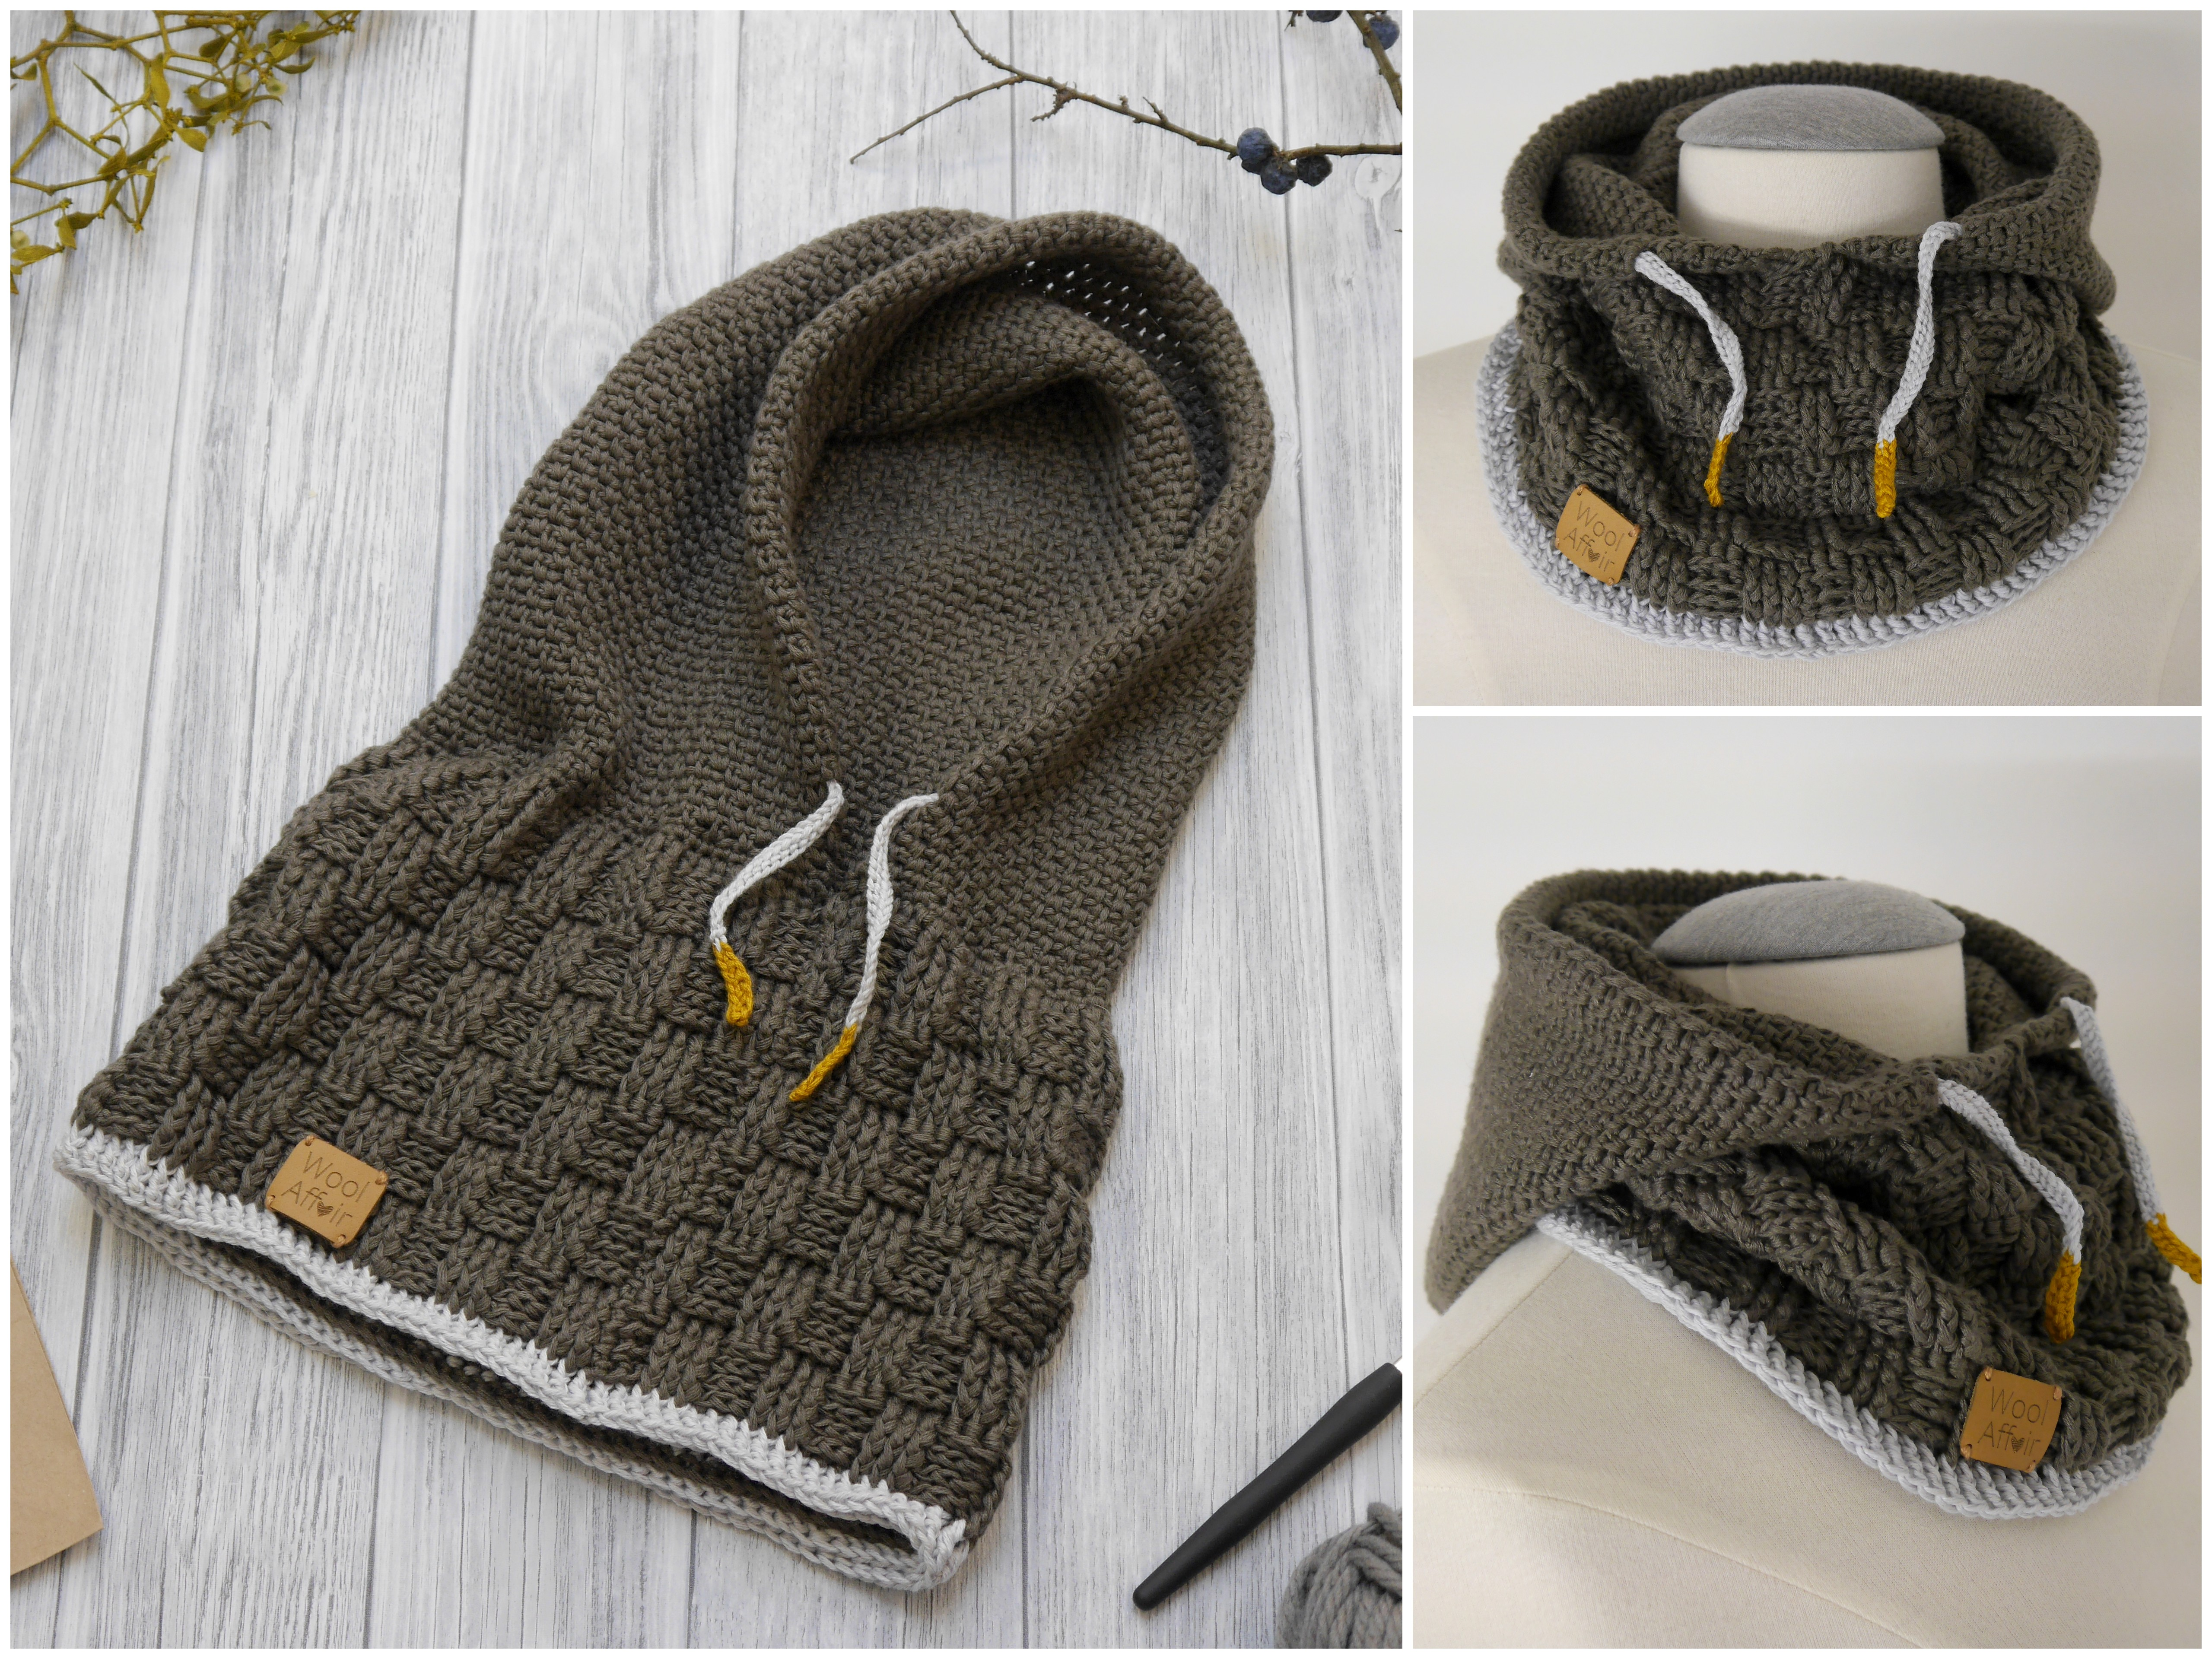 Crochet Pattern Hooded Scarf Scoody No 184e